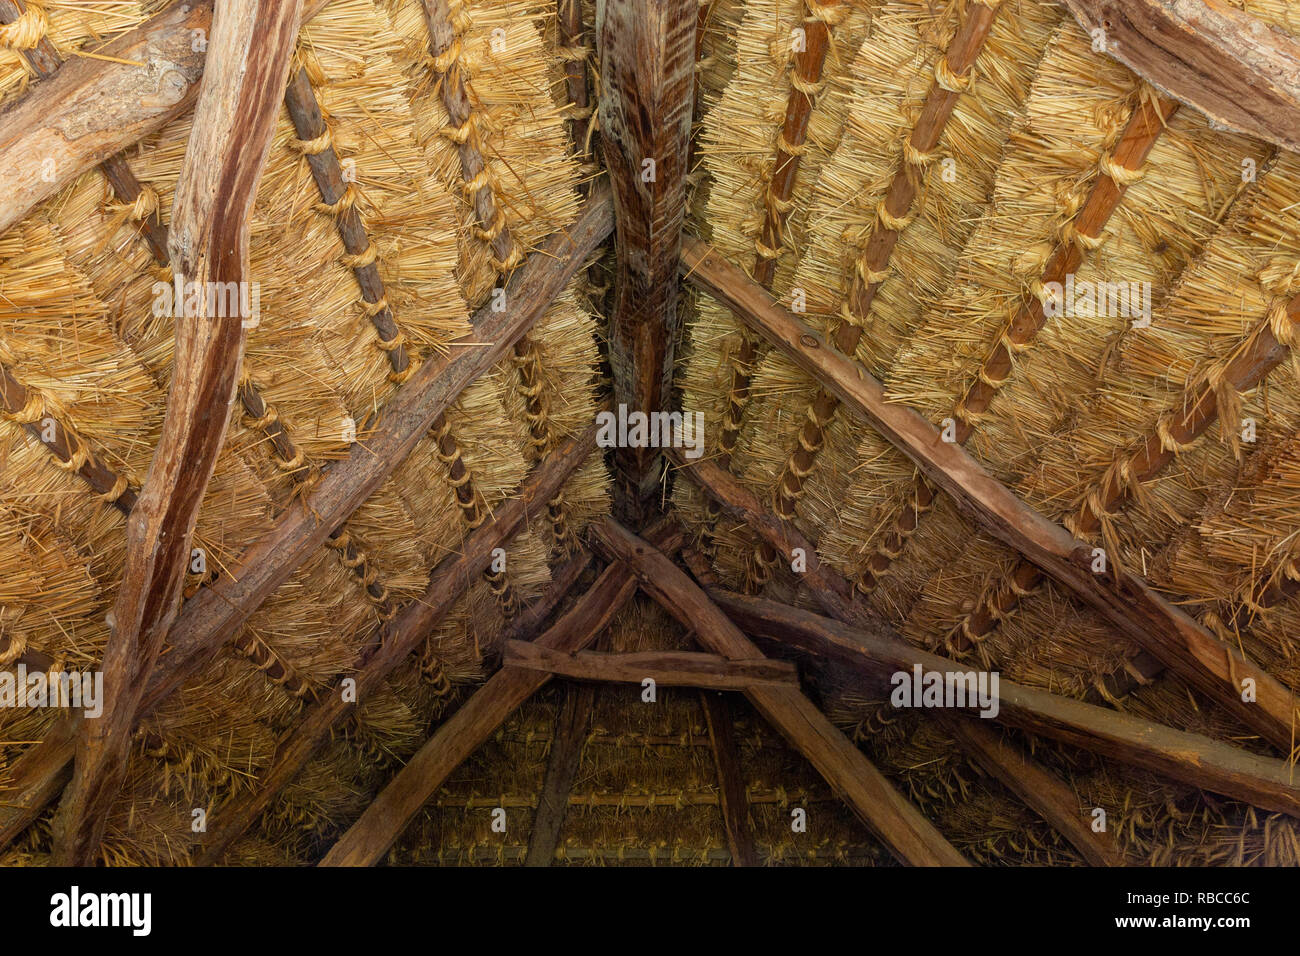 The thatched roof of a house in the so called `Row of Wine Cellars` open-air museum in Cak, Hungary. Small house for pressing grapes and storing fruit - Stock Image